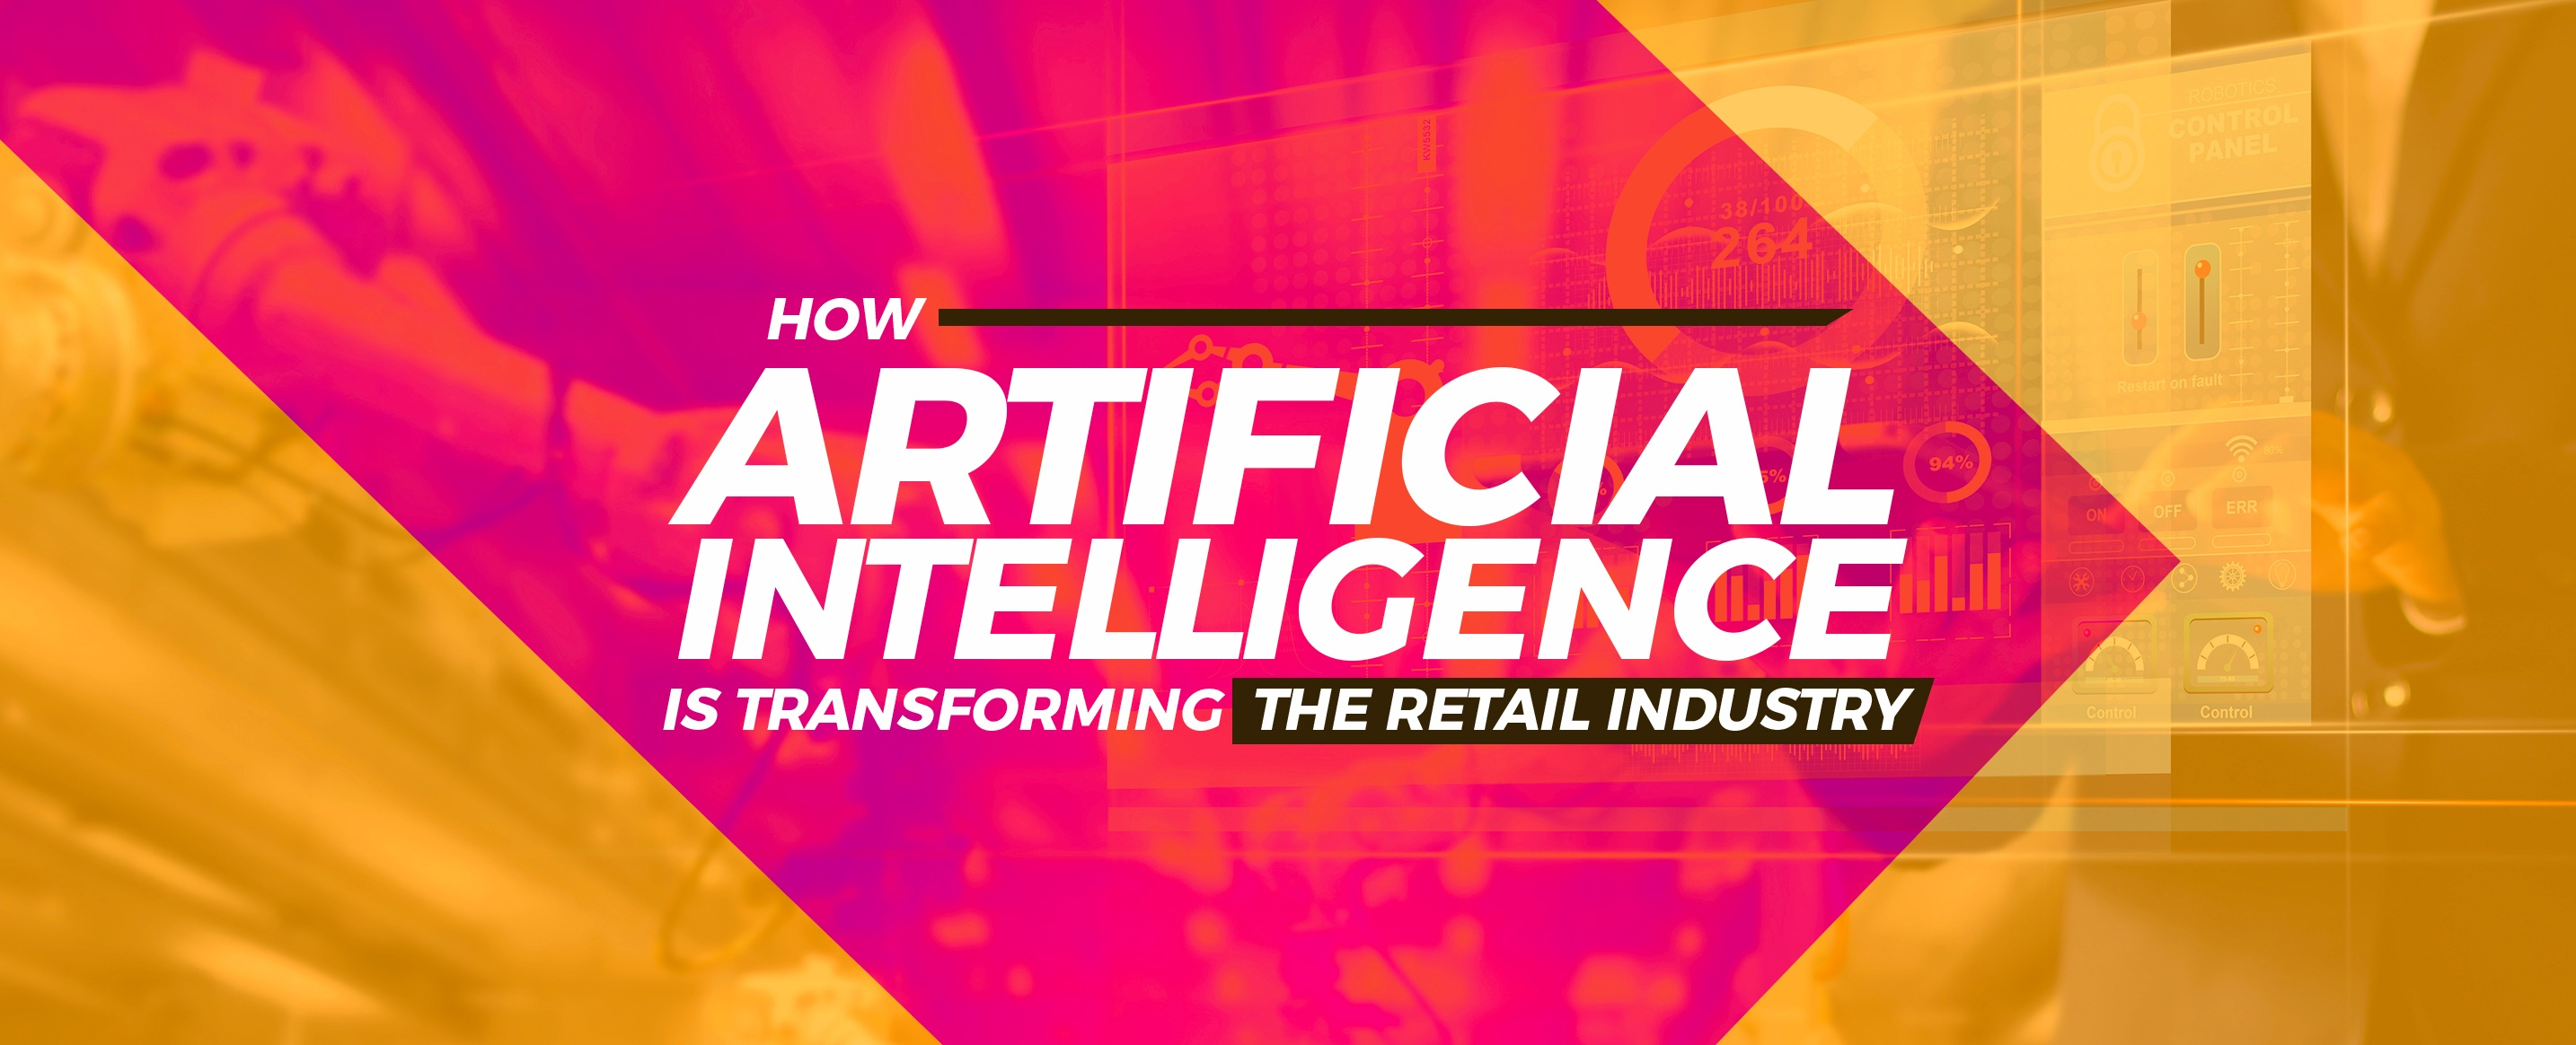 How-Artificial-Intelligence-is-Transforming-the-Retail-Industry